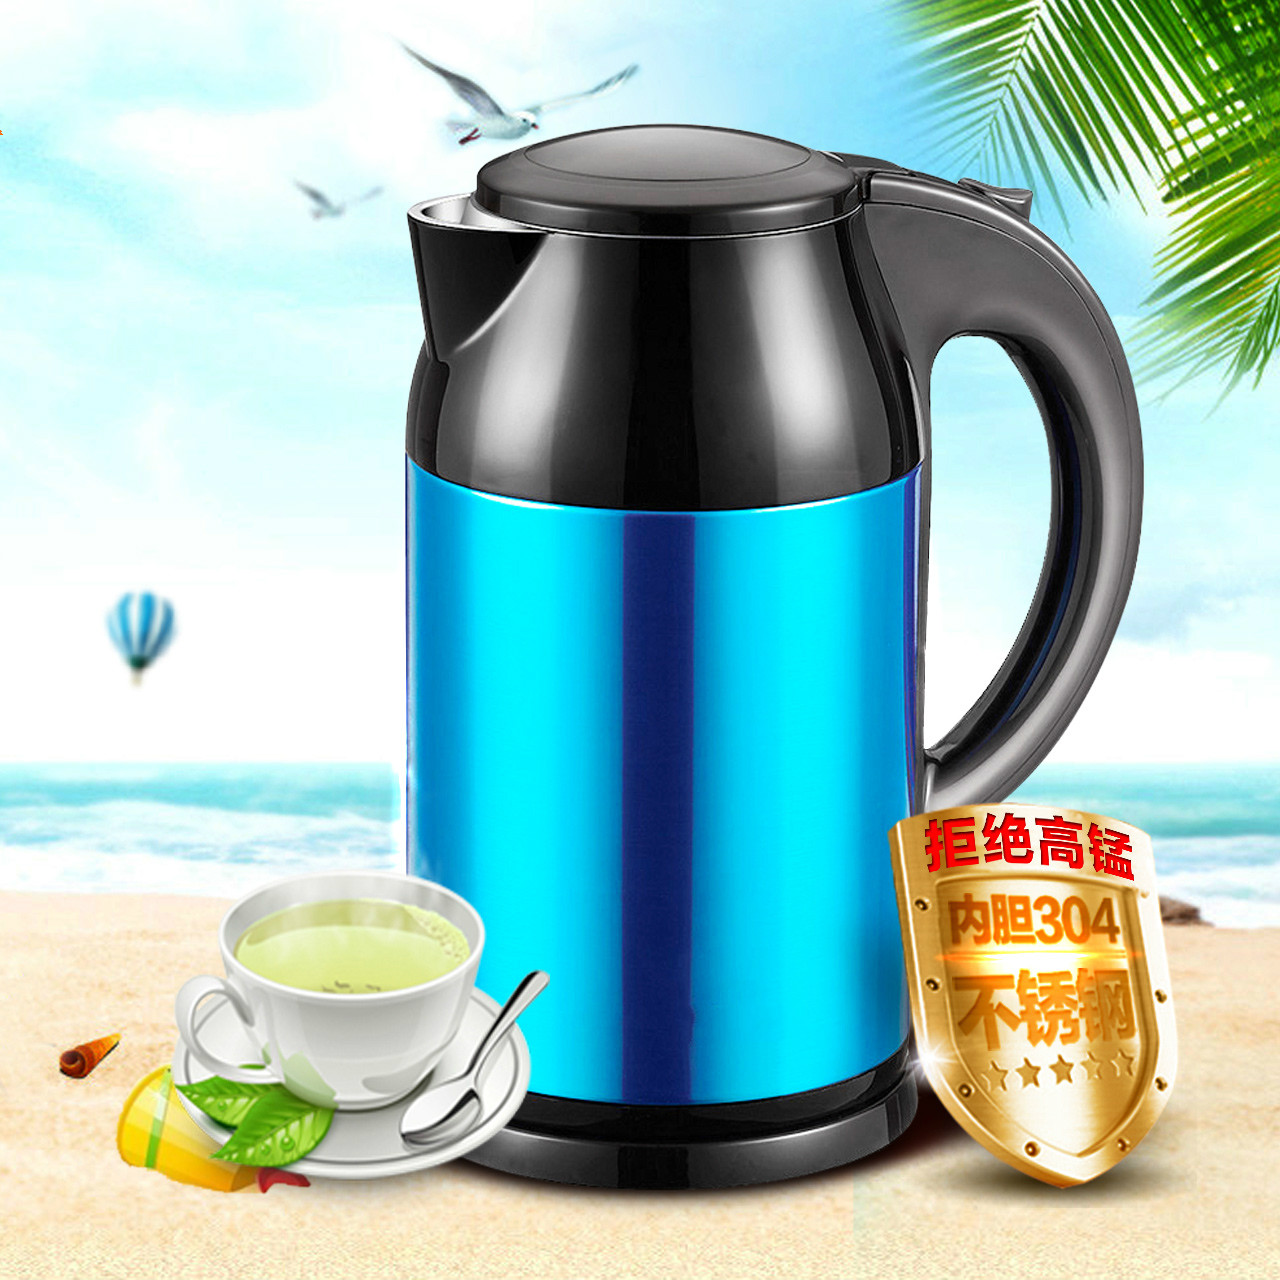 thermos 304 stainless steel domestic kettle kettles keep warm Safety Auto-Off Functionthermos 304 stainless steel domestic kettle kettles keep warm Safety Auto-Off Function